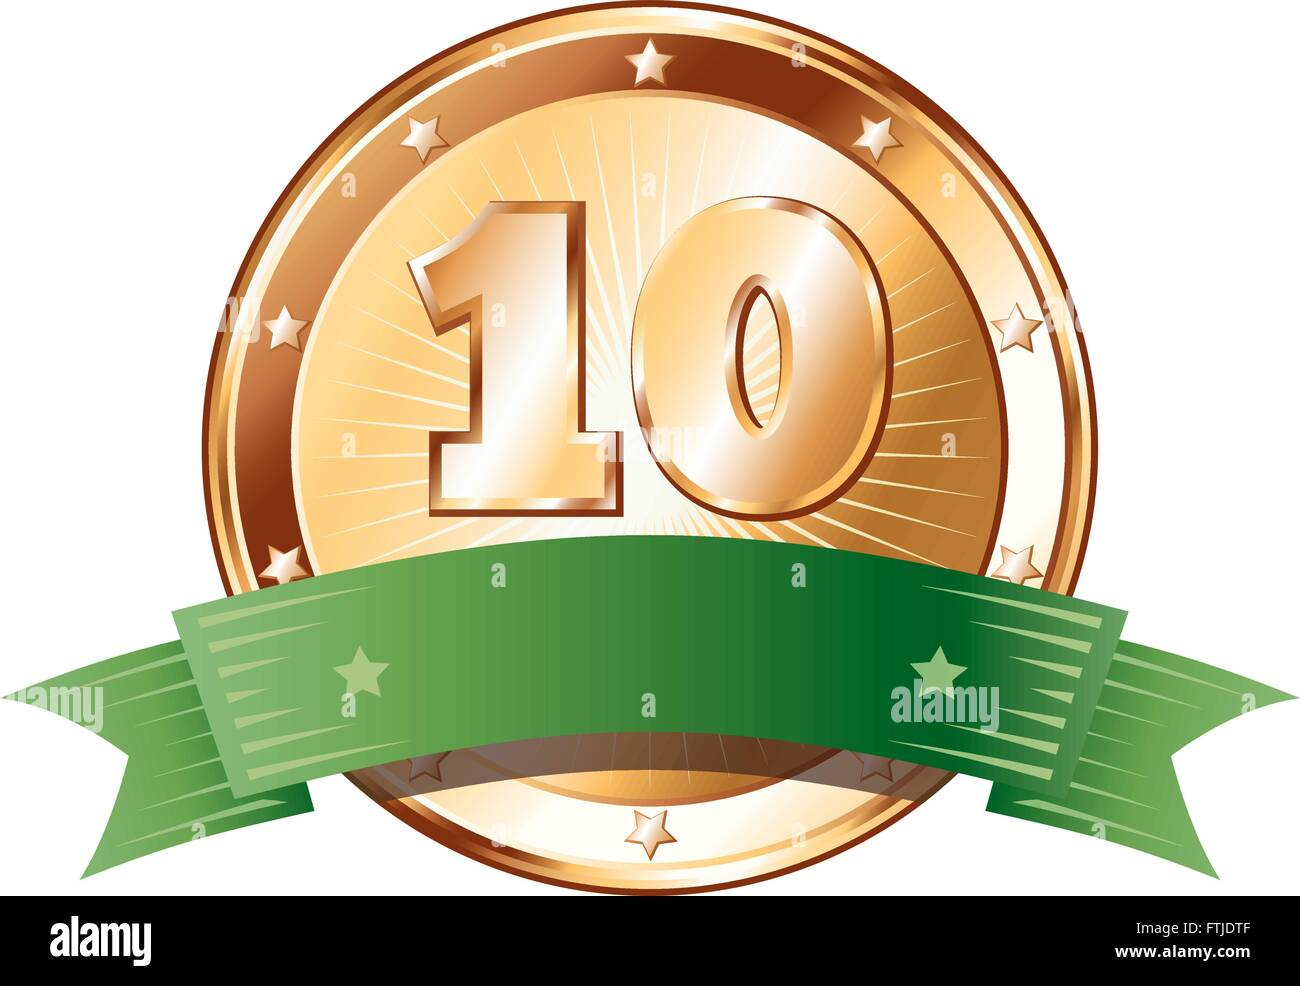 Round circle shaped metal badge / seal of approval in a bronze look with a green ribbon and the number ten. - Stock Vector